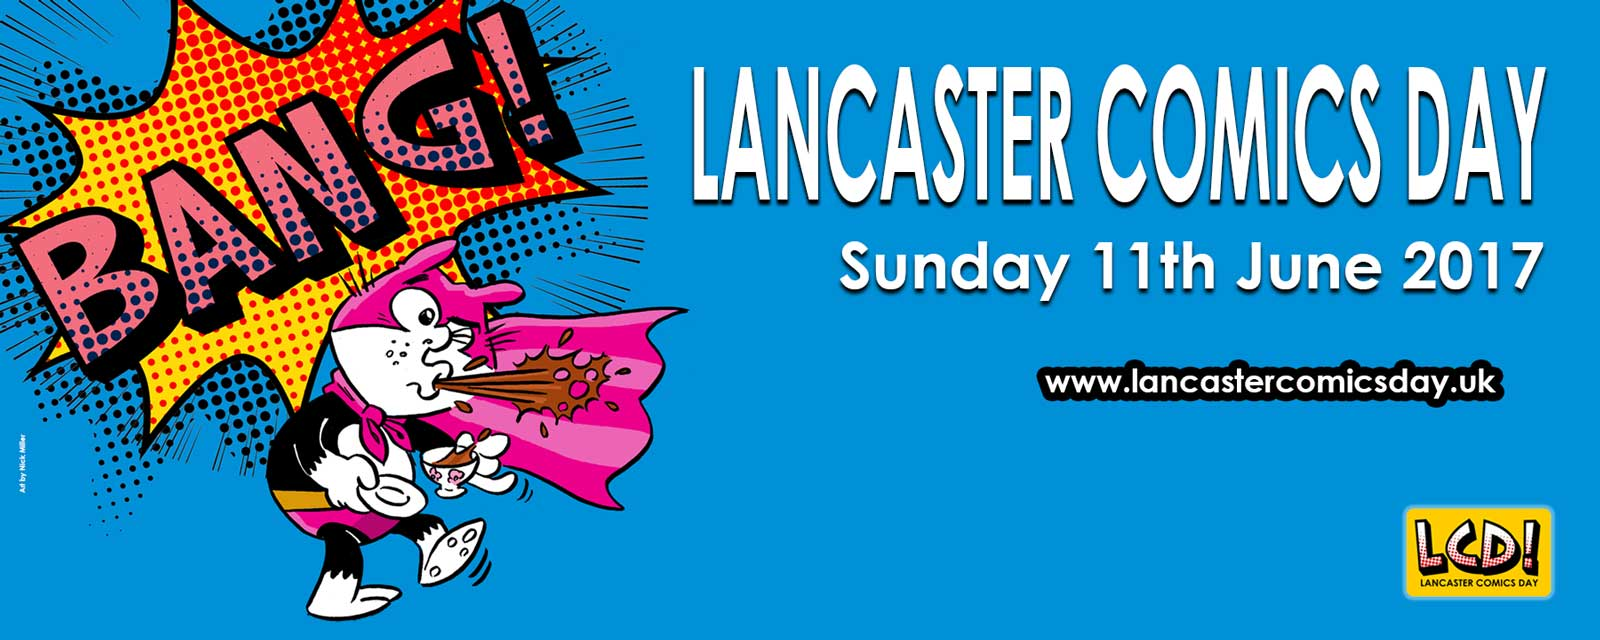 Lancaster Comics Day 2017 Promotional Art